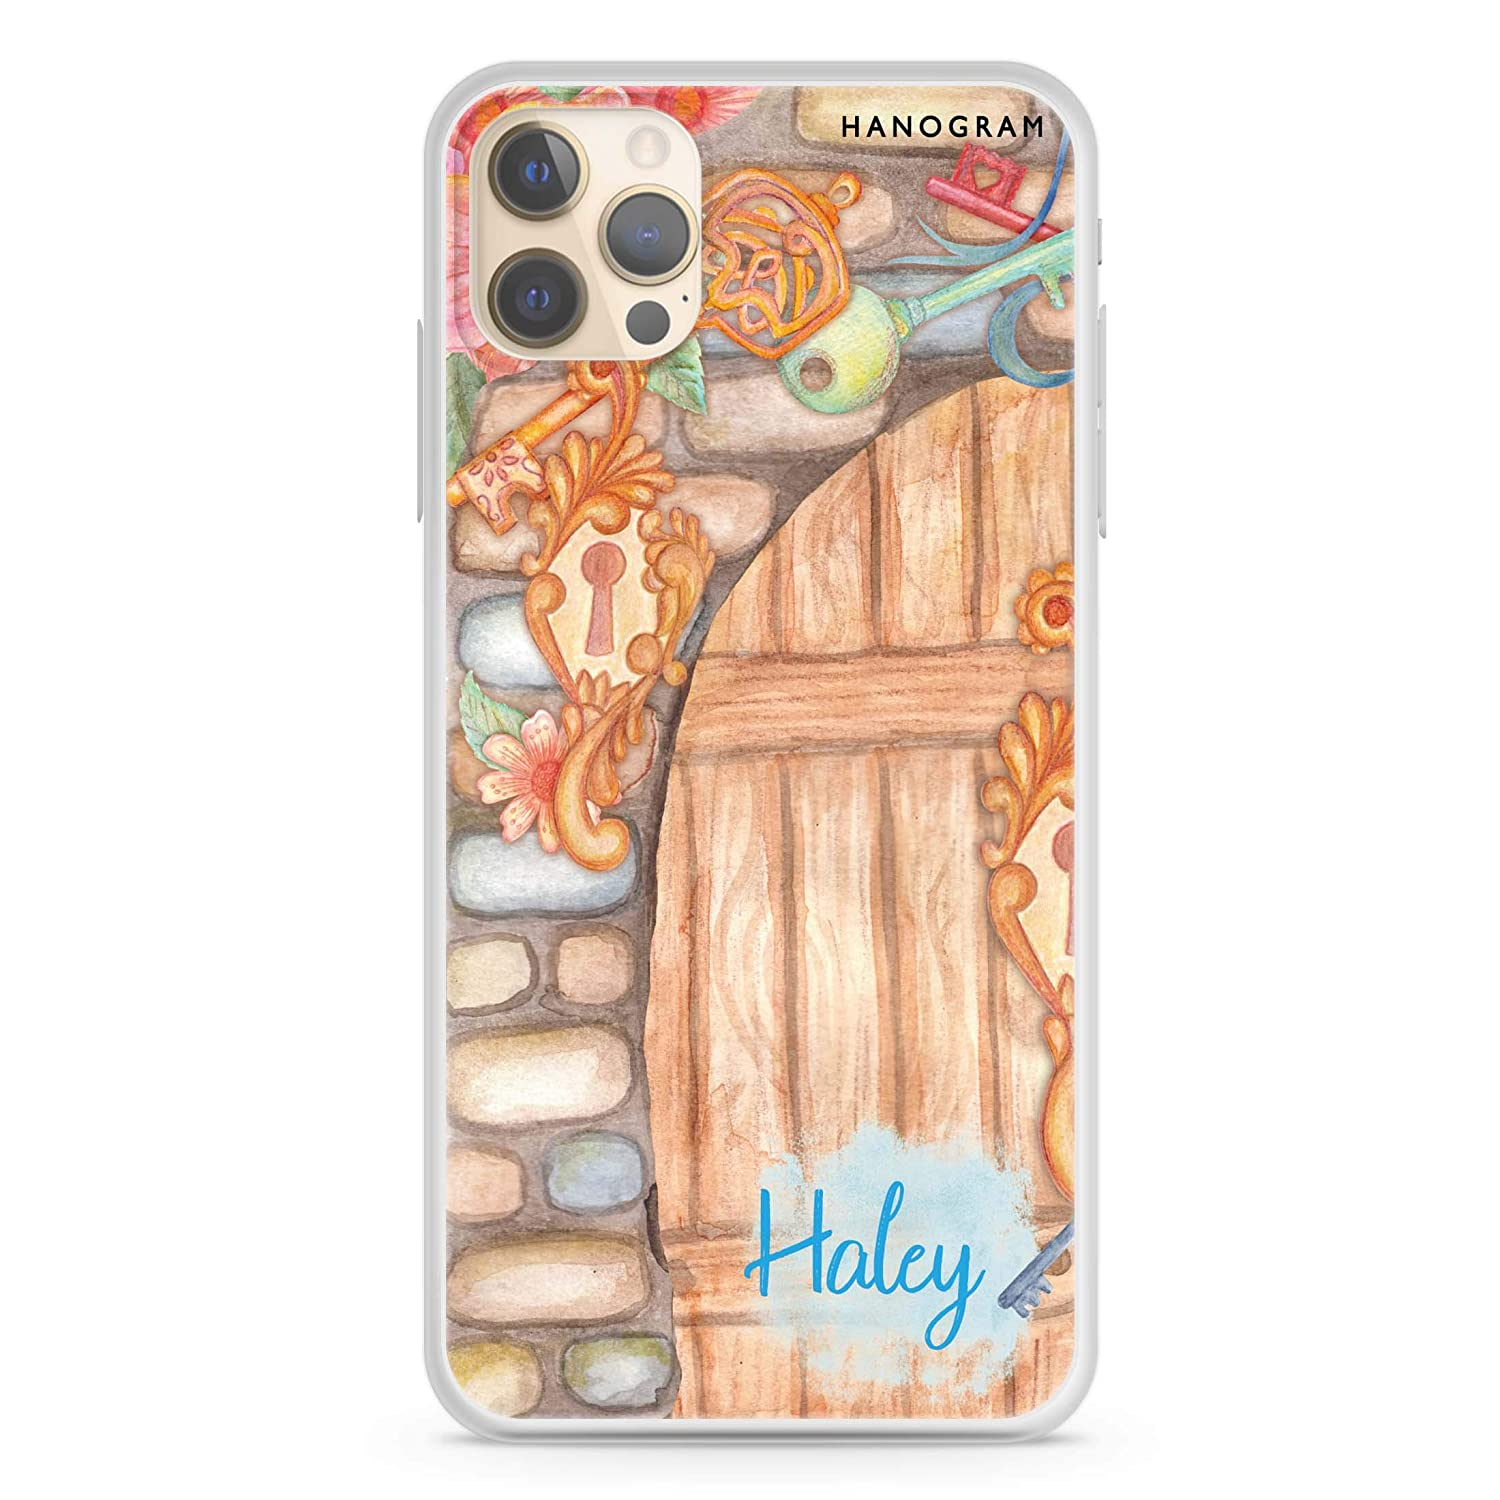 Love Castle I iPhone 12 Pro San Jose Mall iPho Clear Max Case Soft Free shipping anywhere in the nation